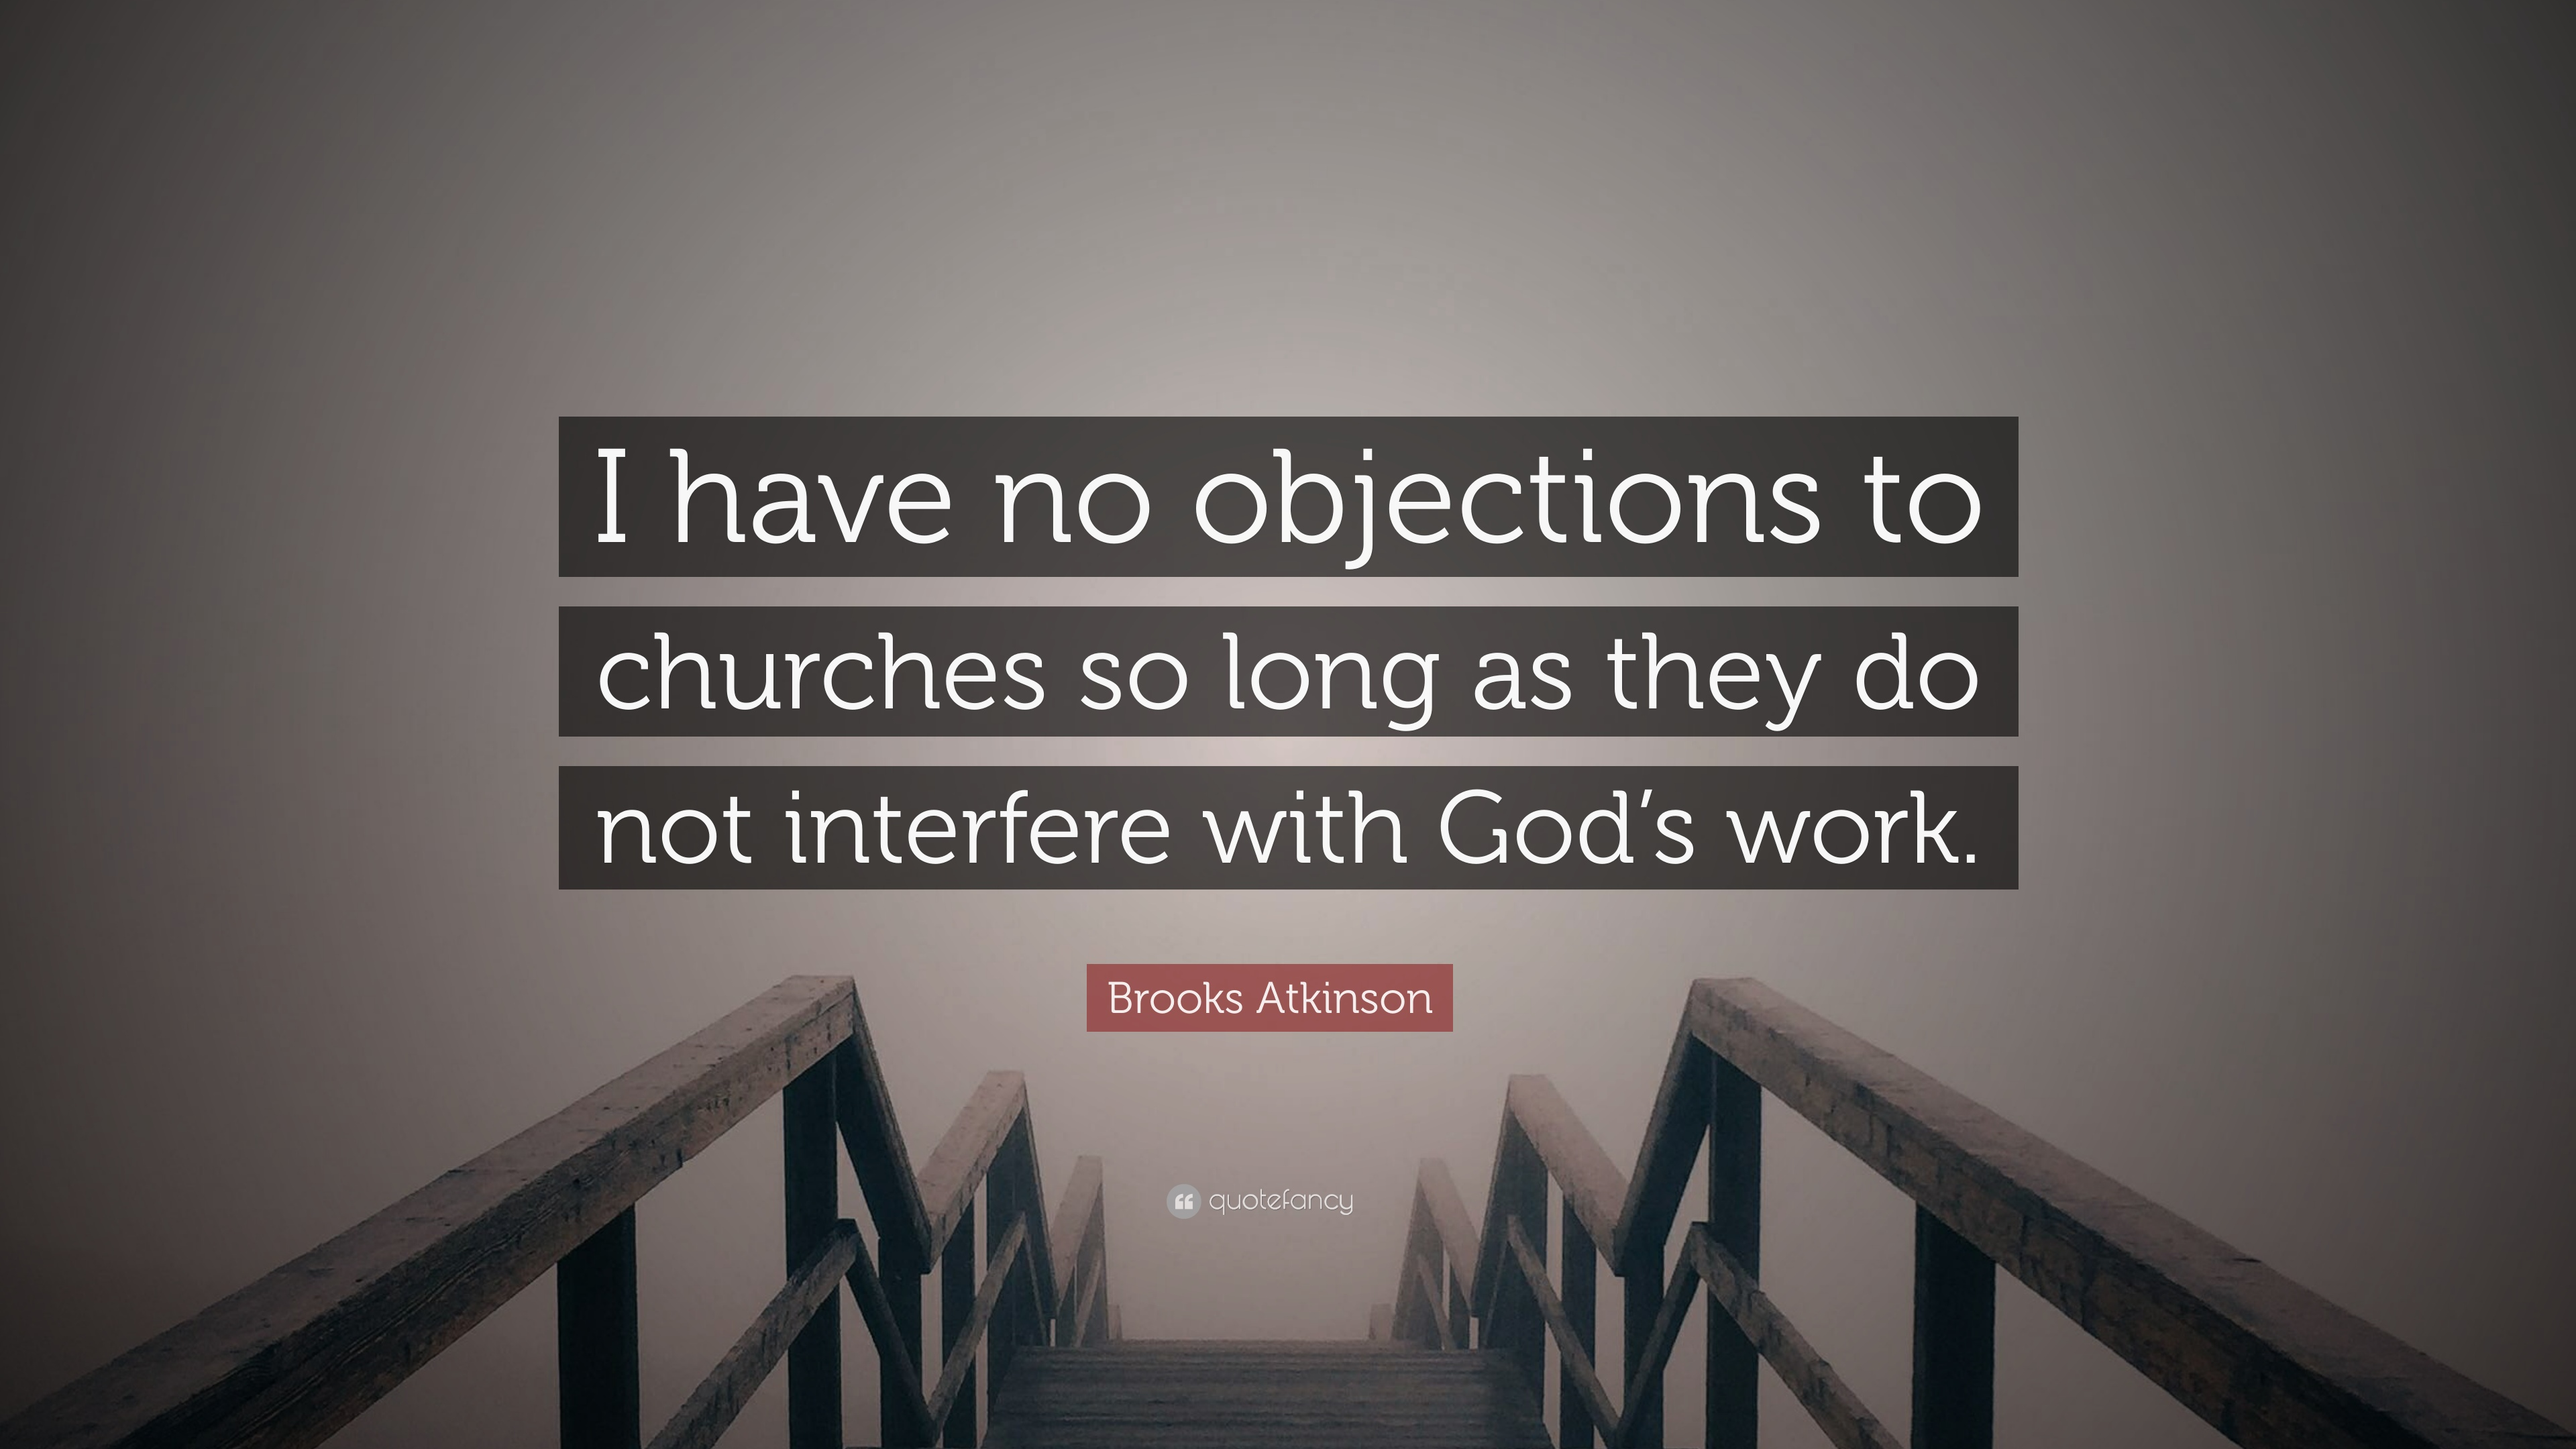 brooks atkinson quote i have no objections to churches so long as they do